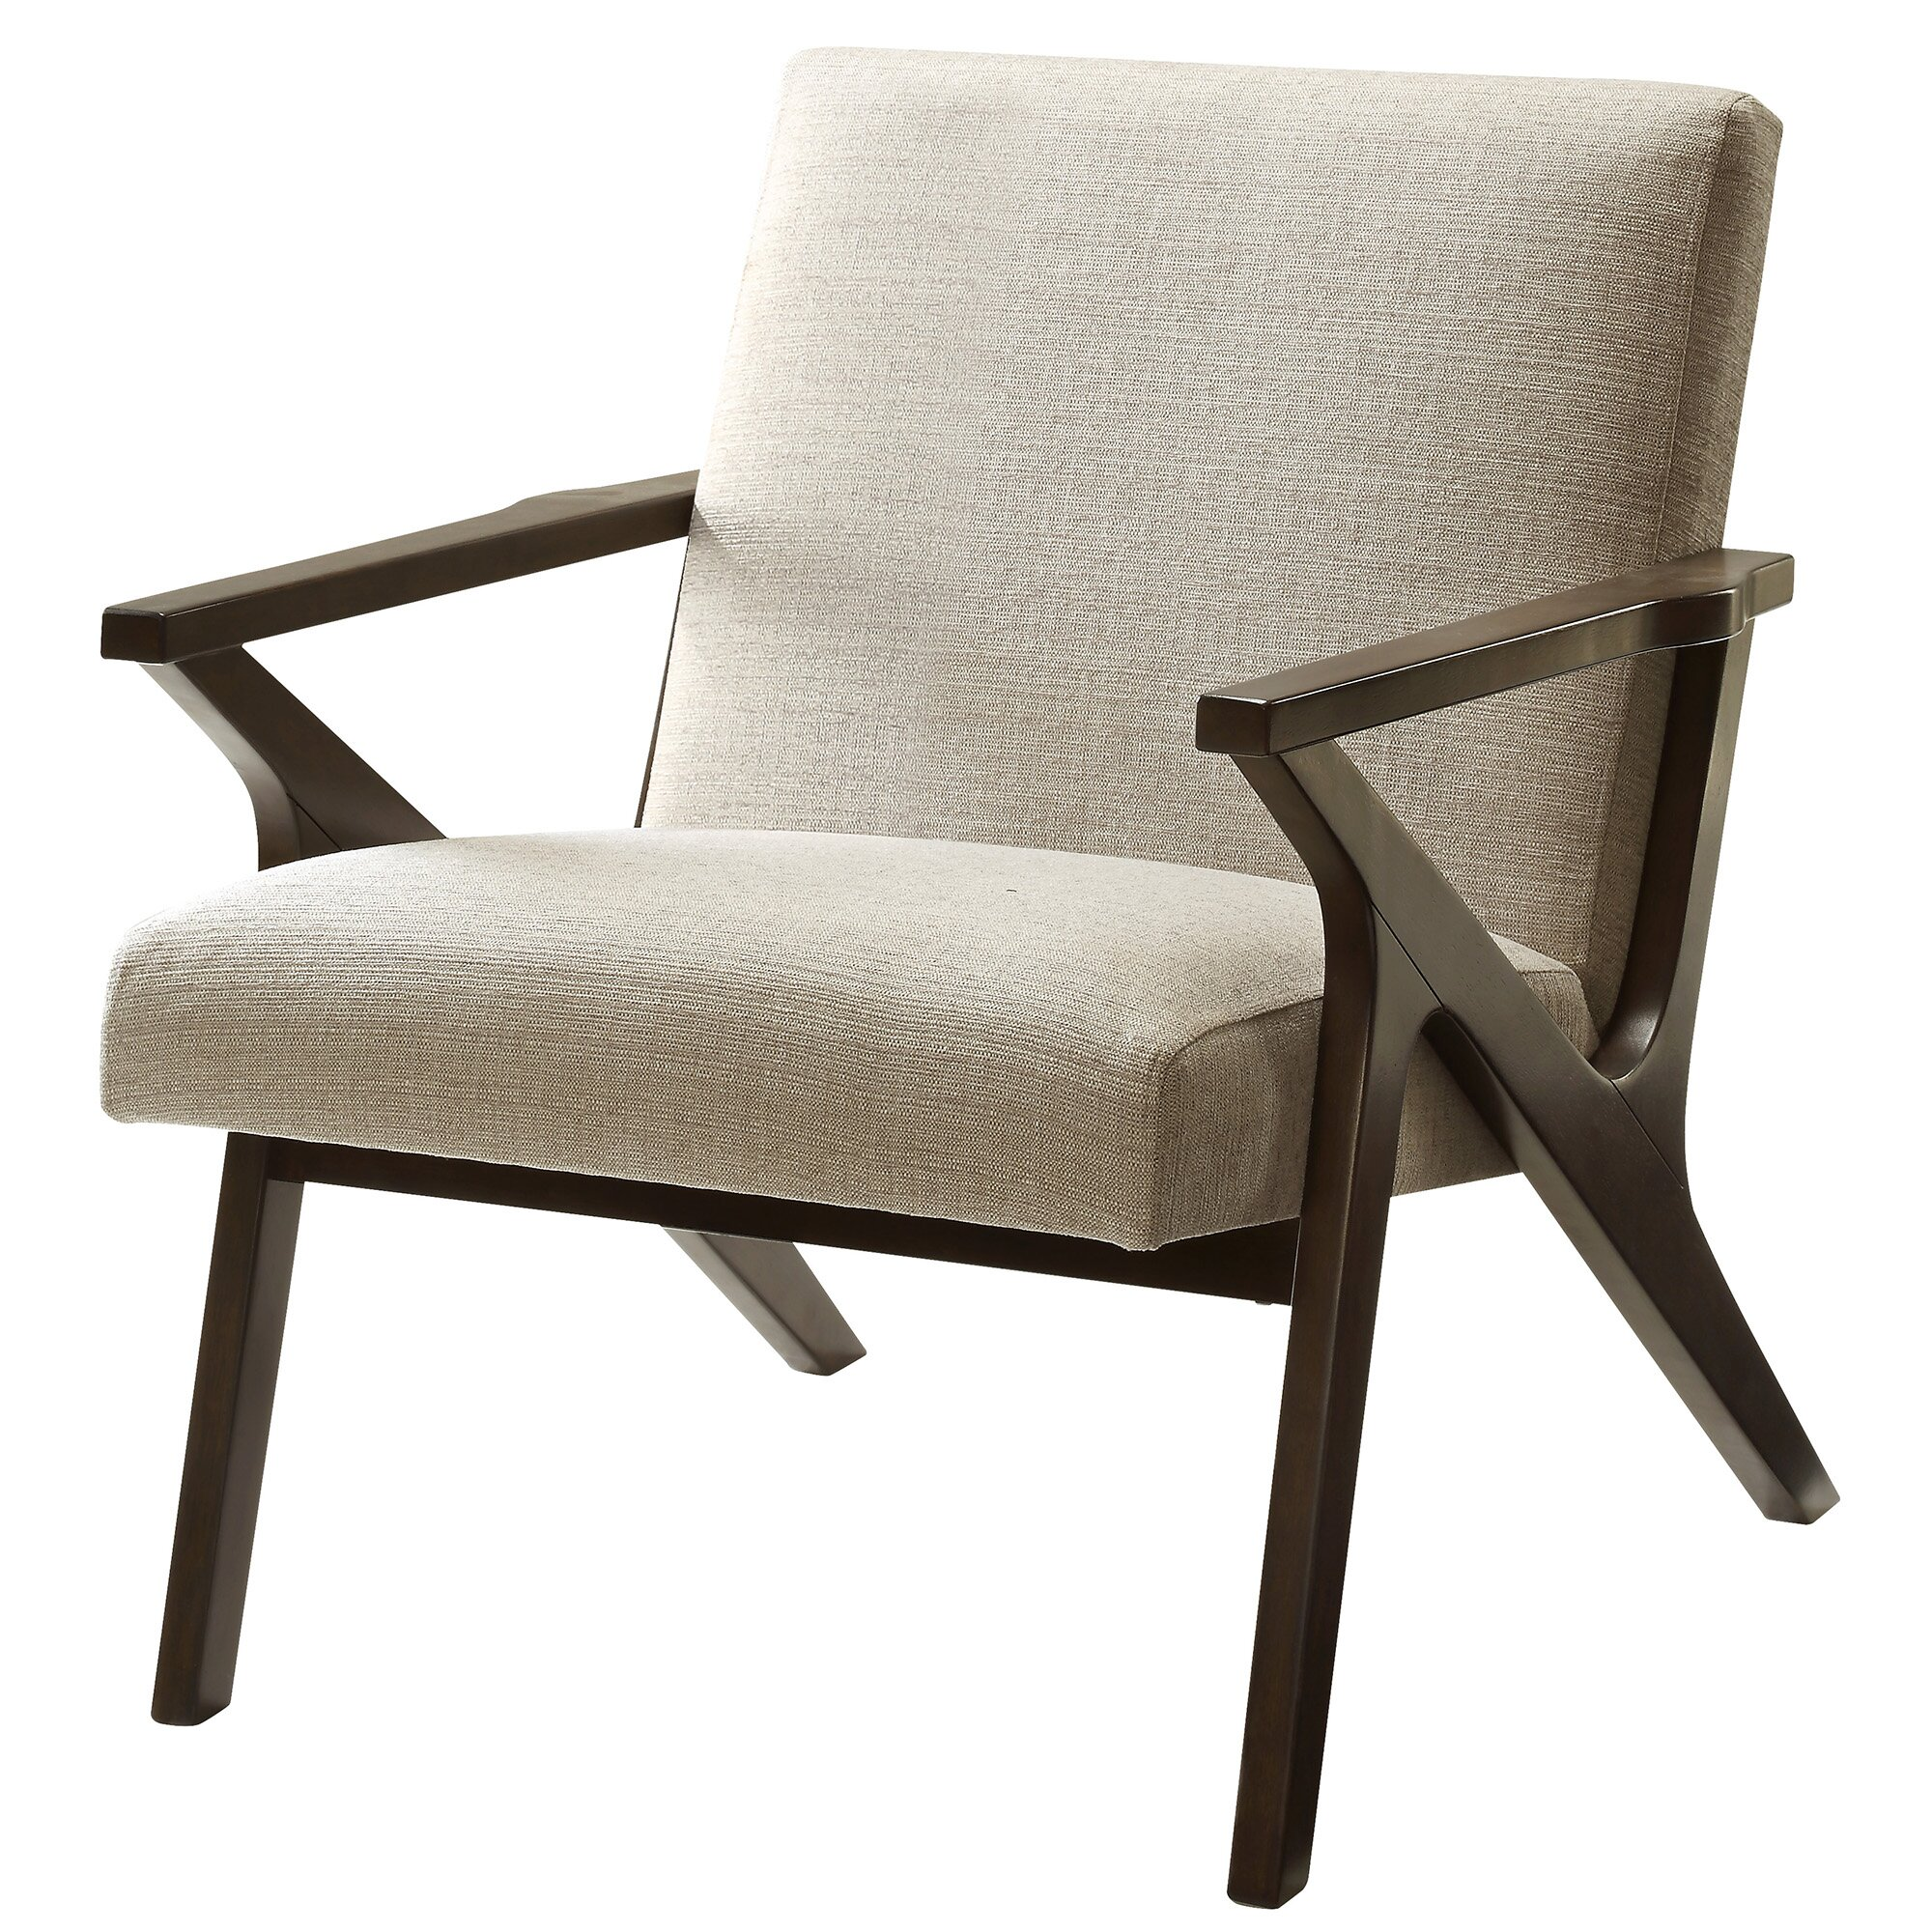 Closed Arm Accent Chair: !nspire Upholstered Accent Arm Chair & Reviews